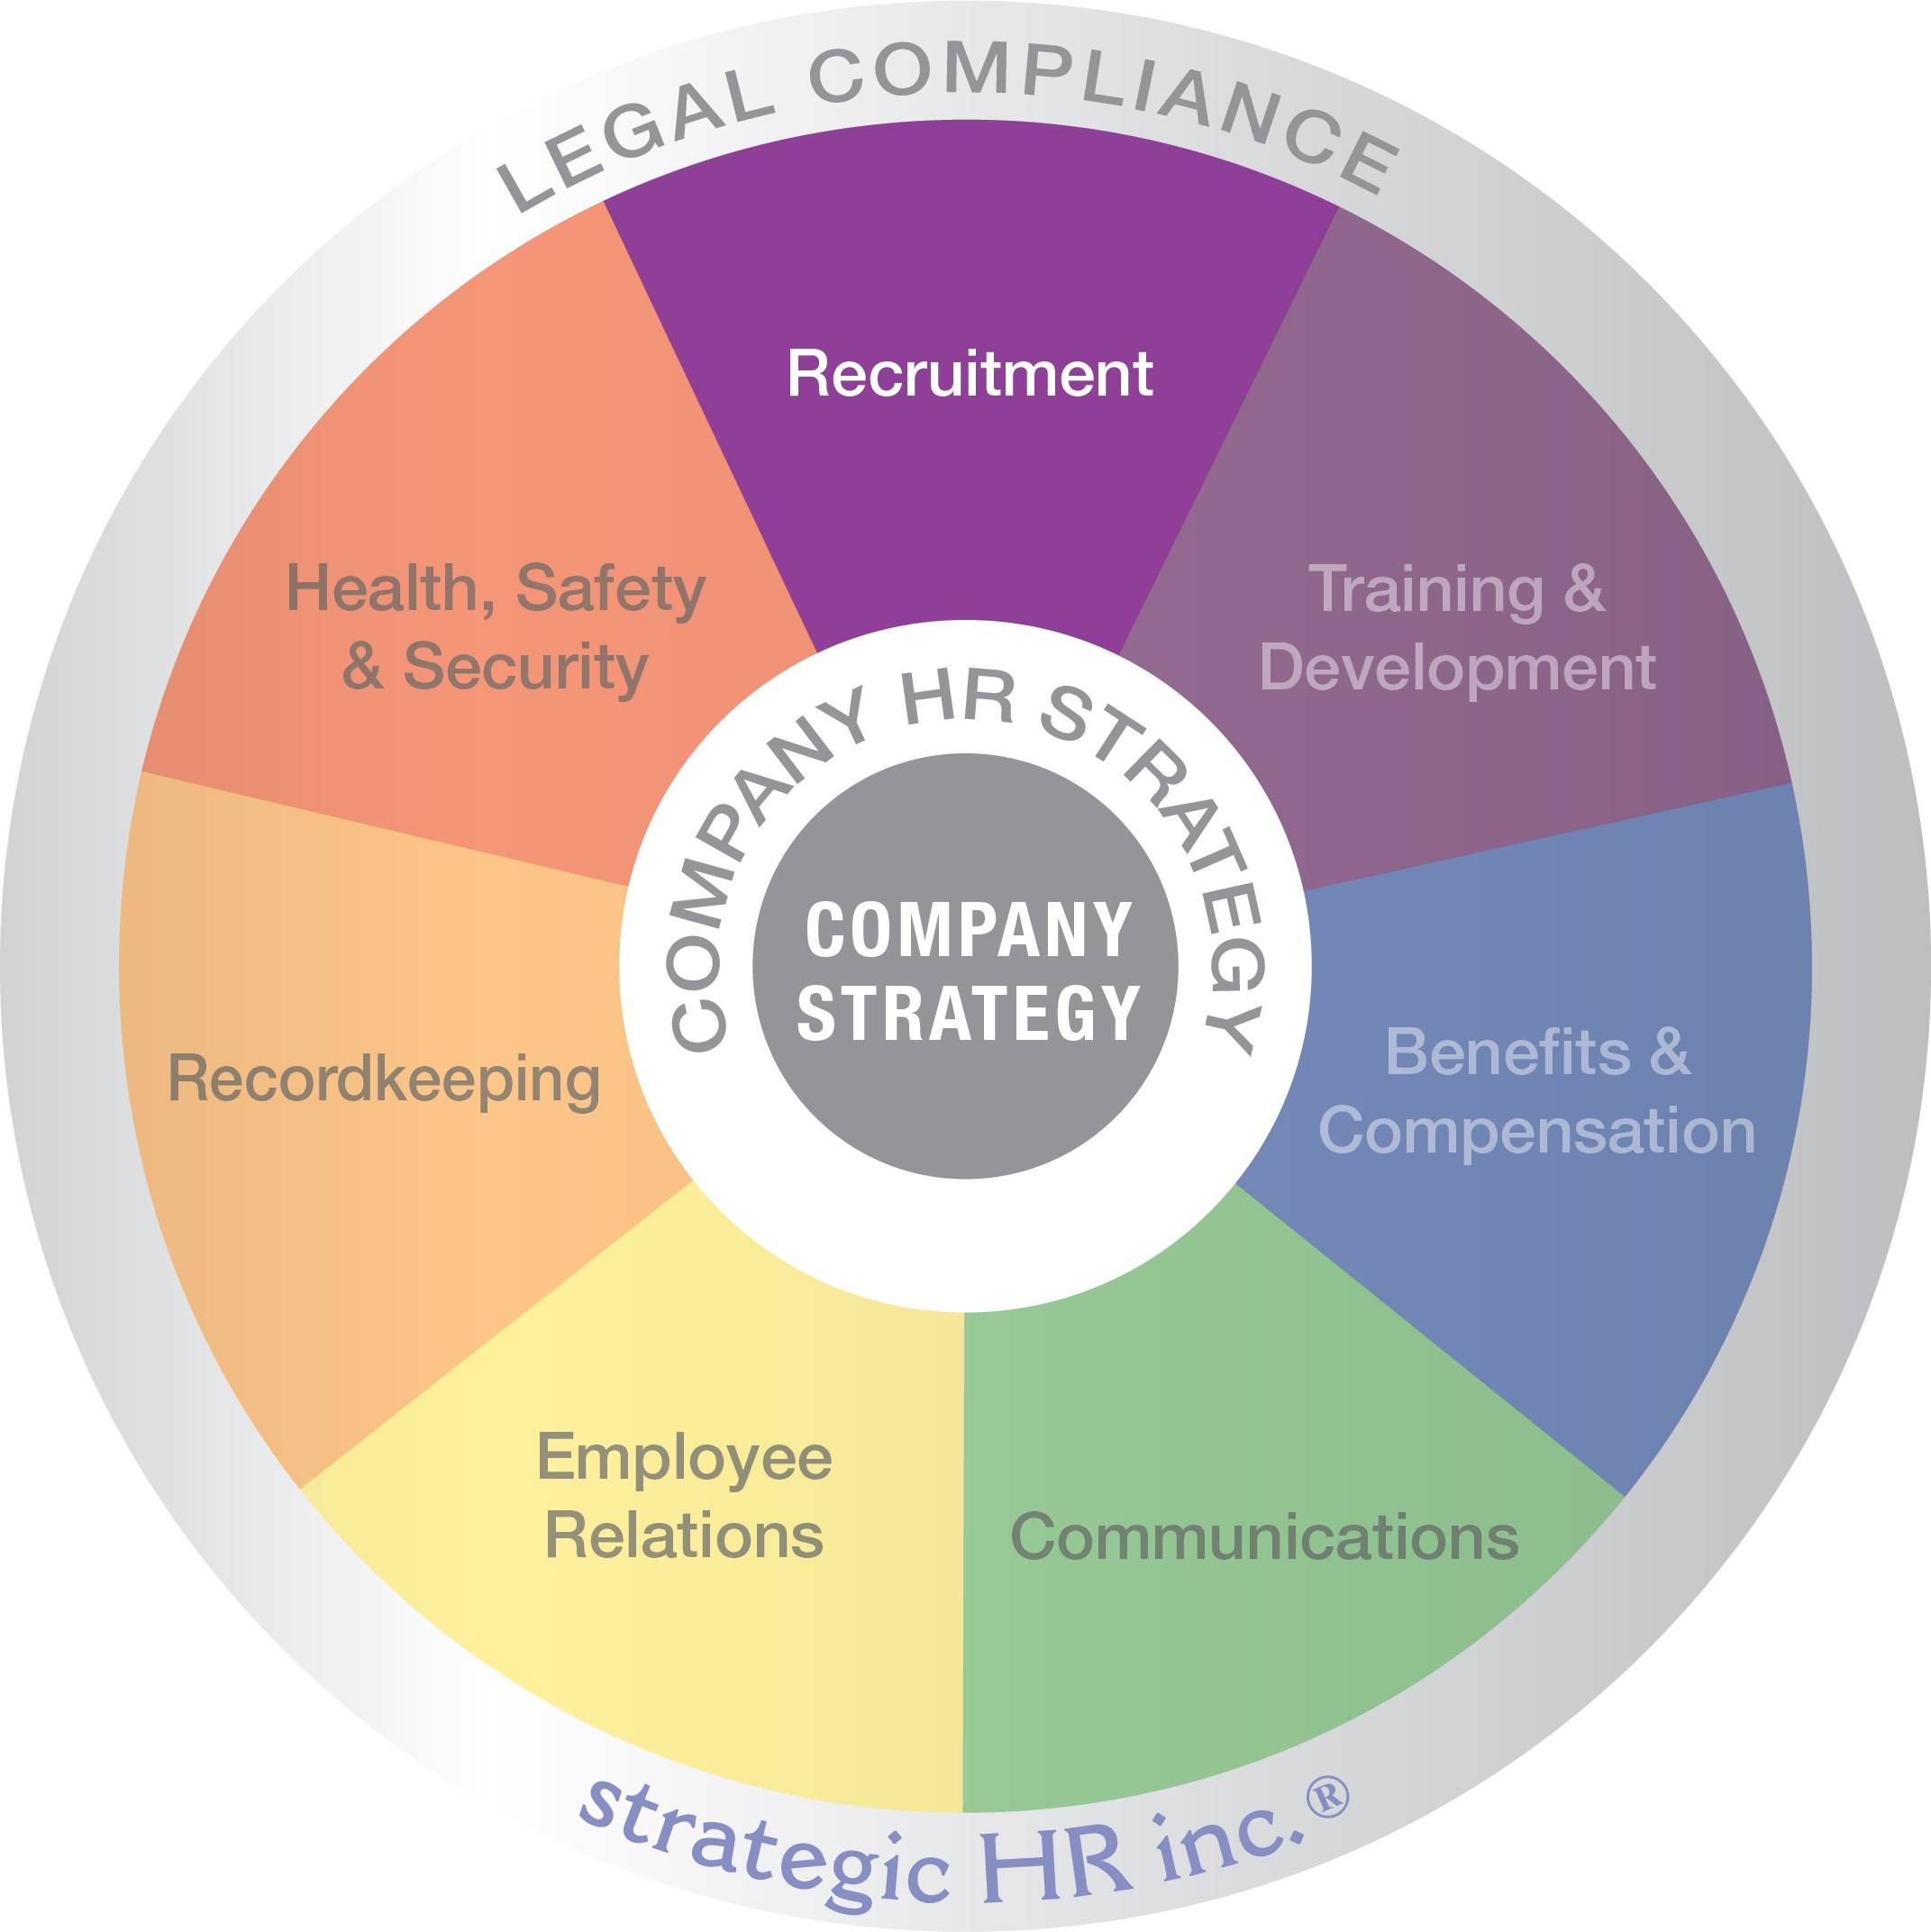 strategic HR inc. Recruitment Wedge